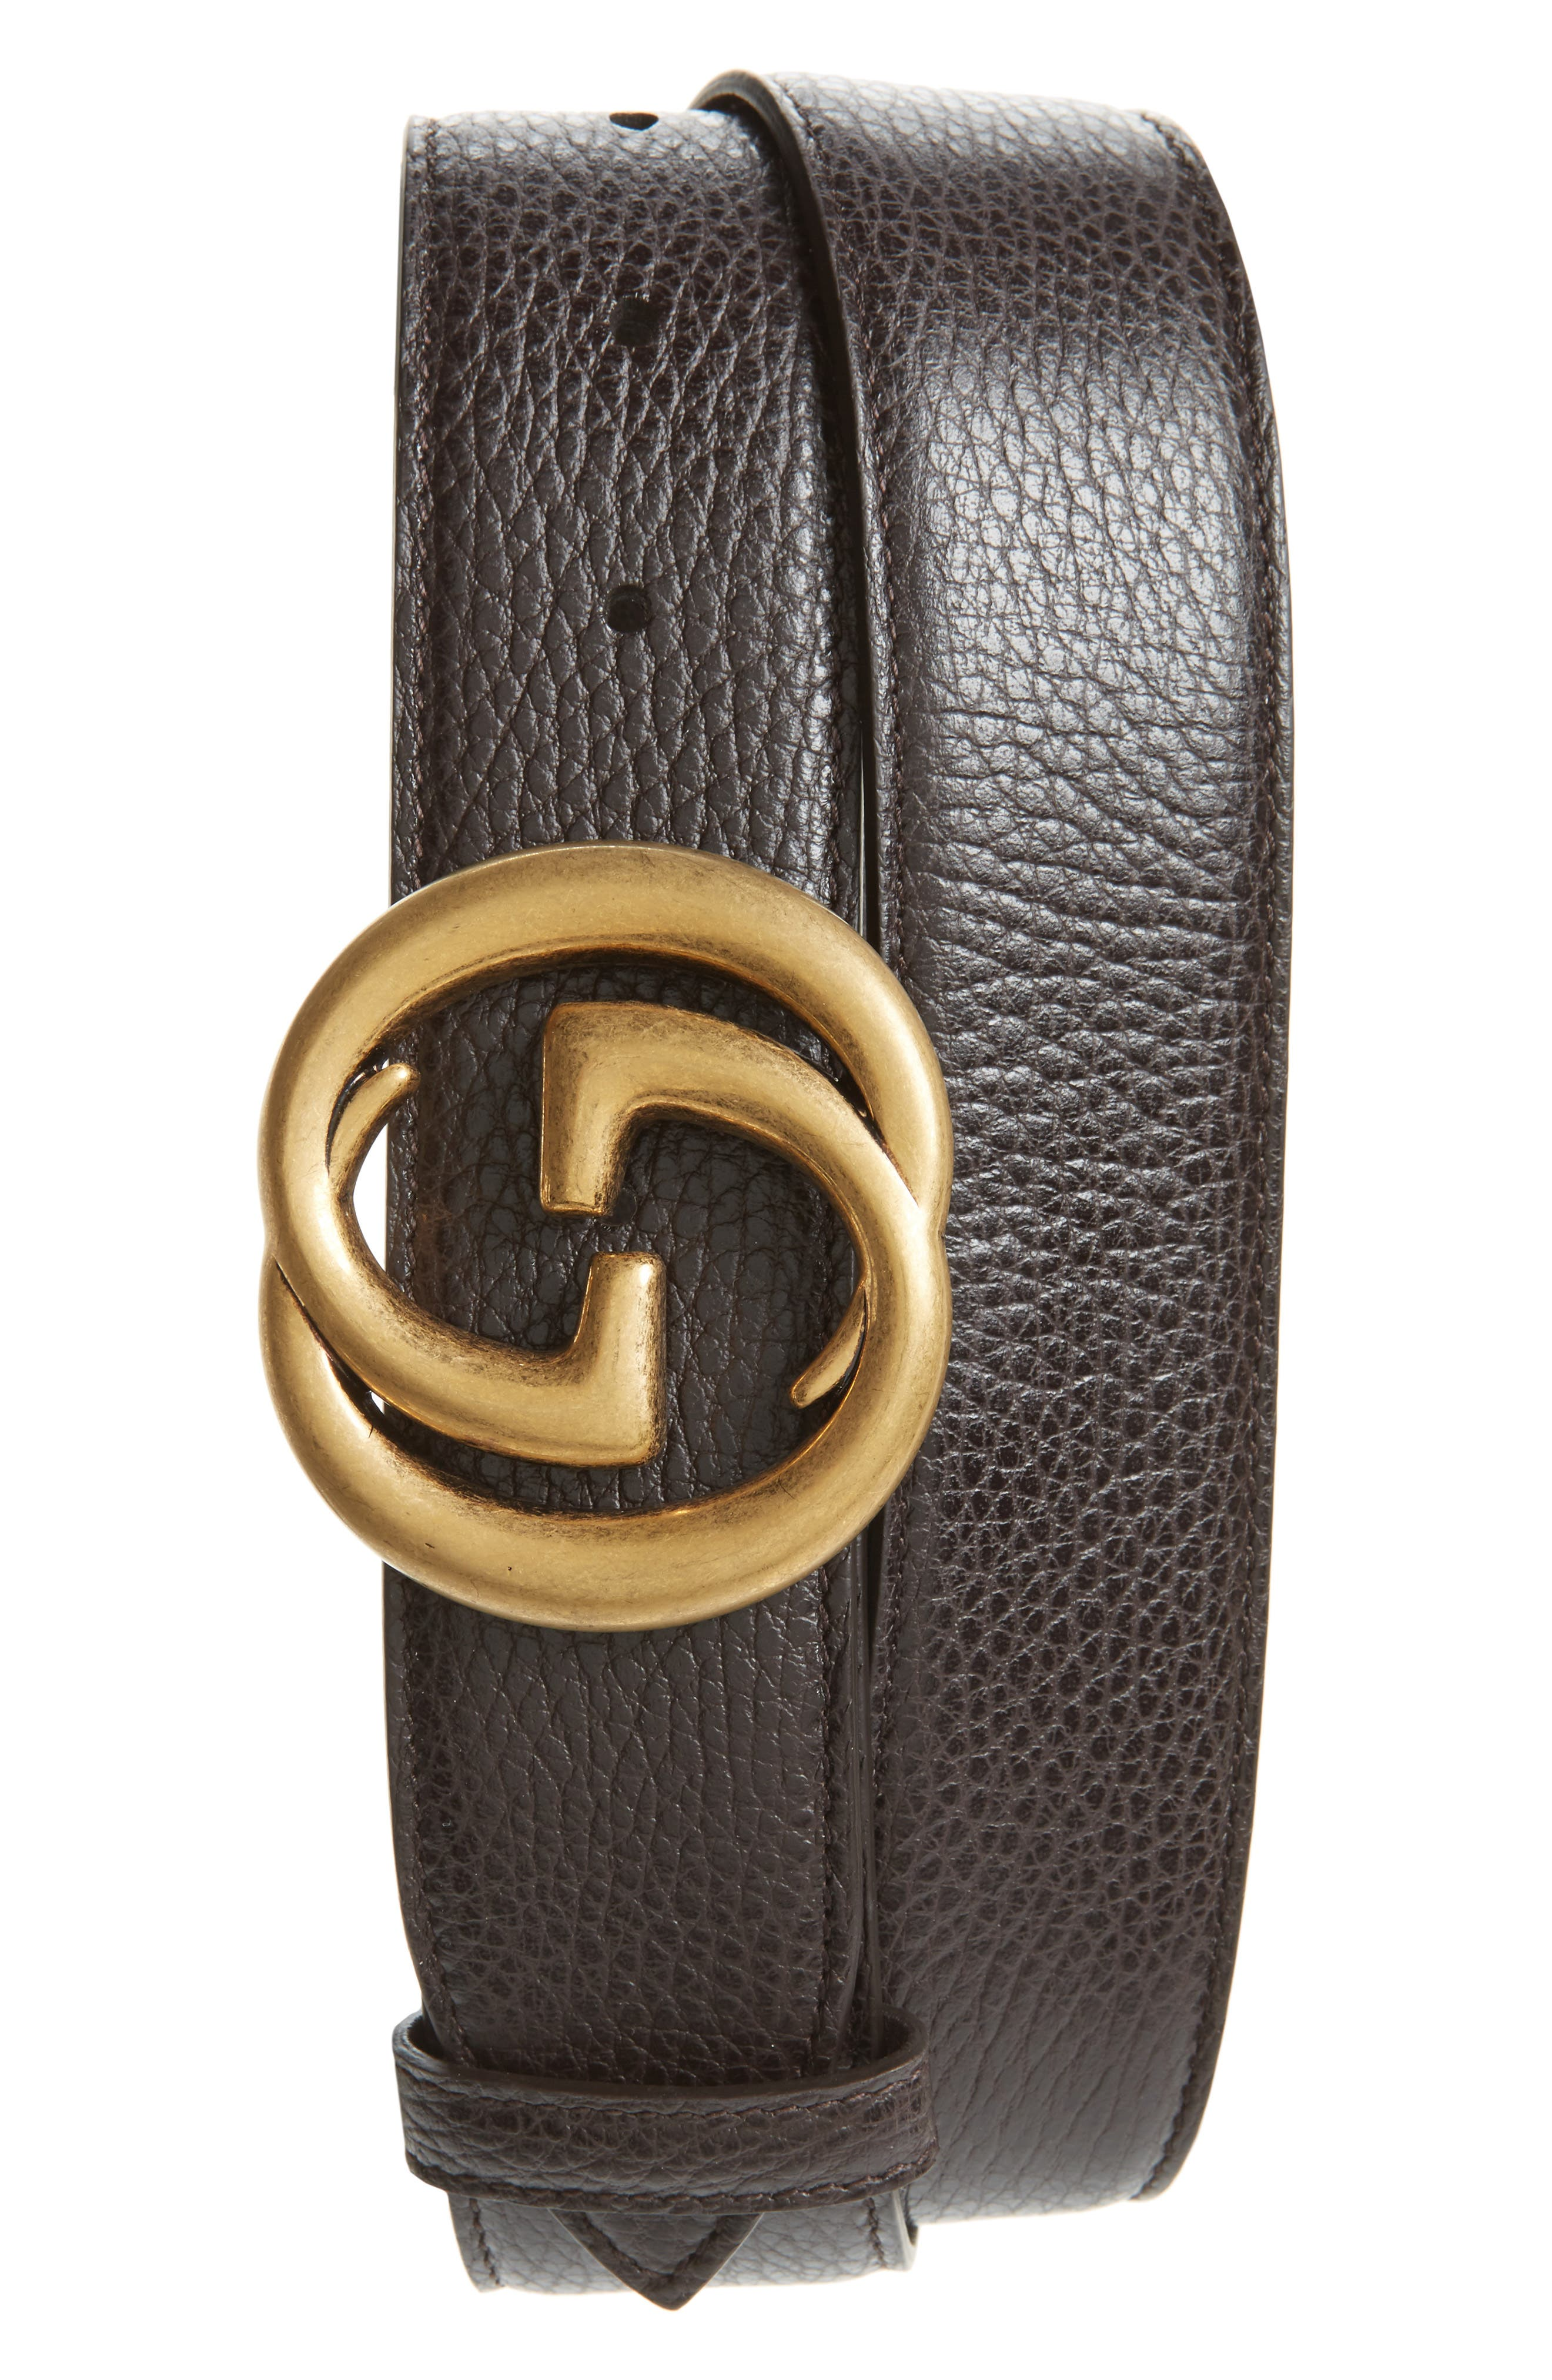 Interlocking-G Calfskin Leather Belt,                         Main,                         color, Cocoa